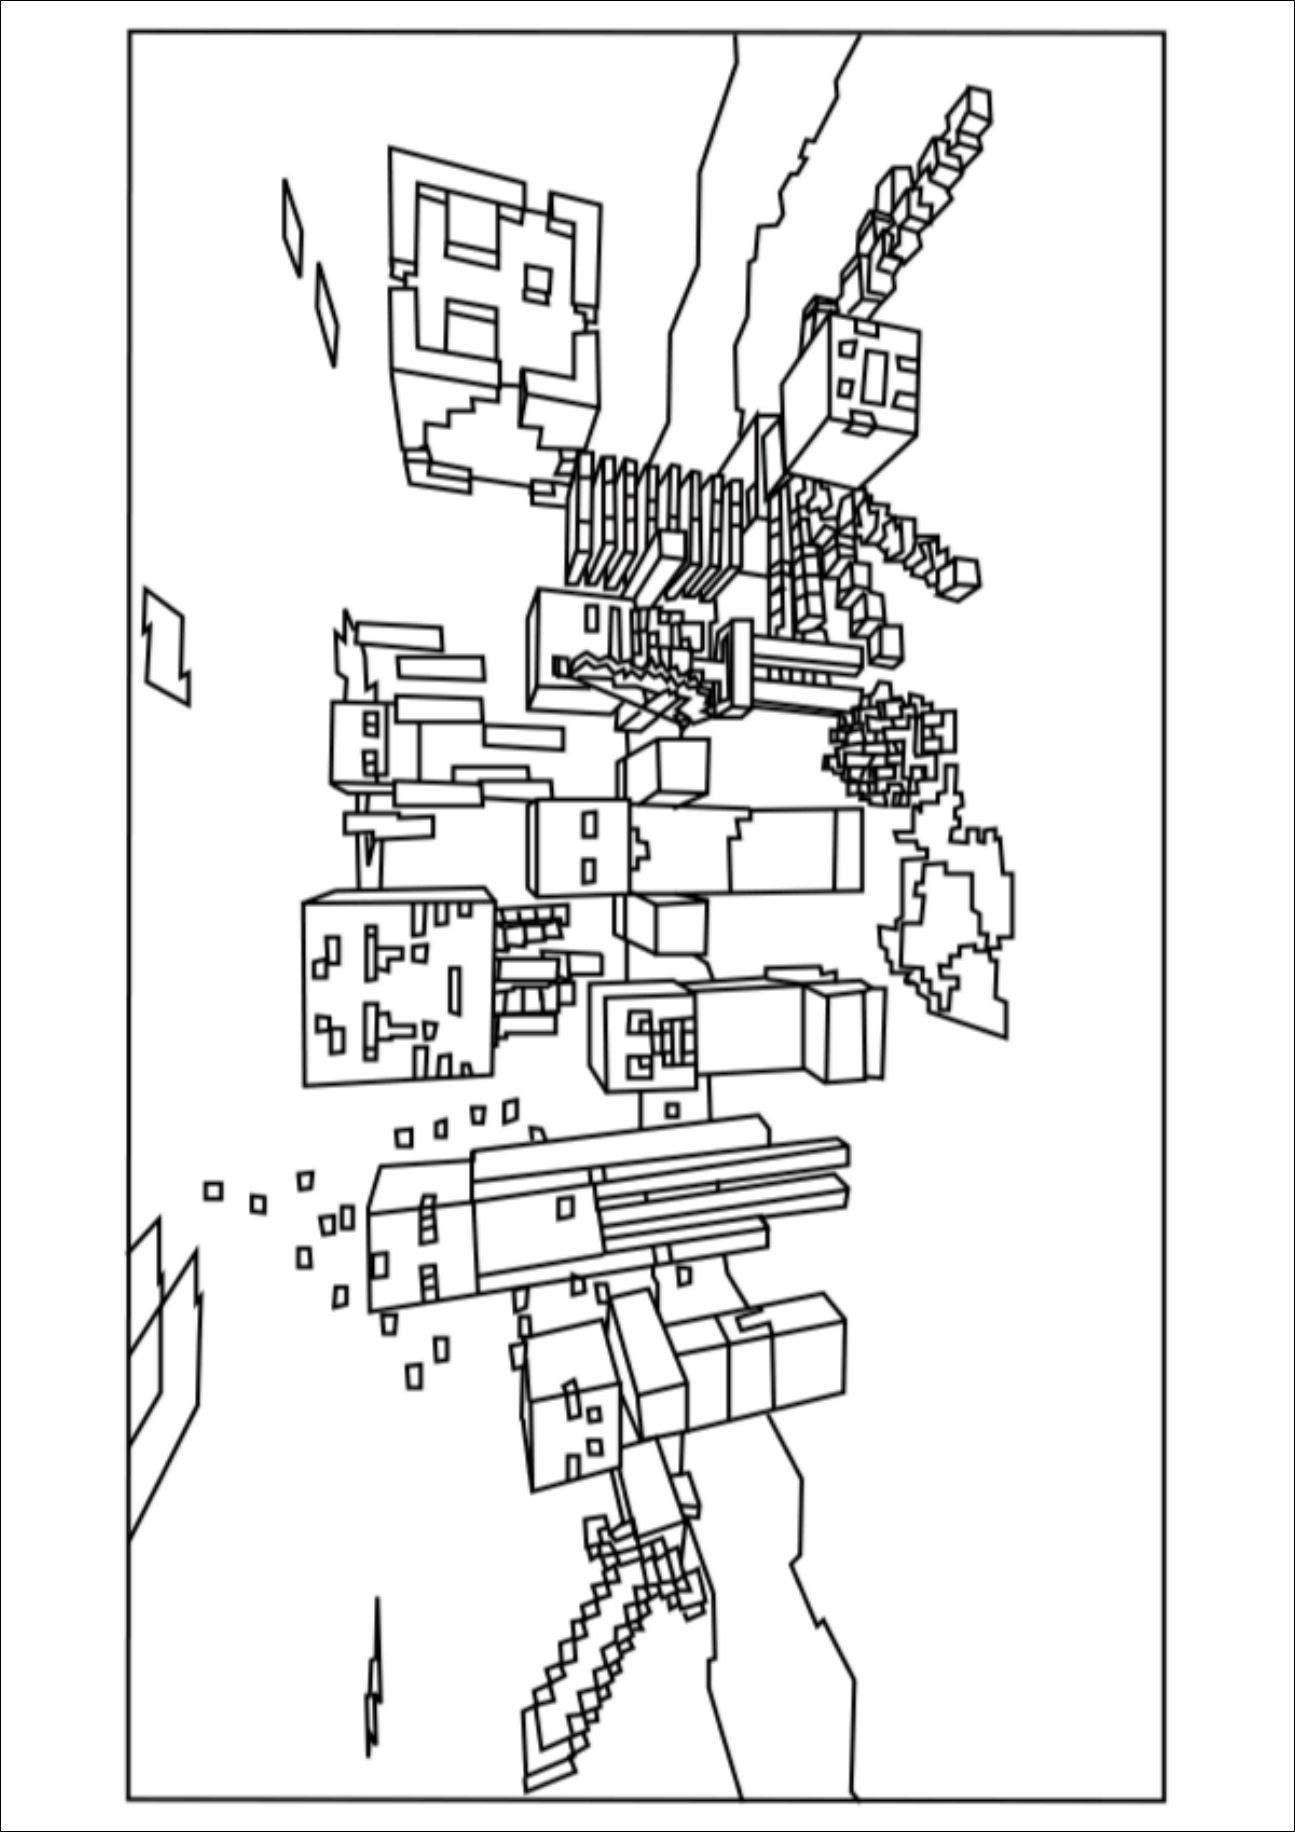 Free Coloring Page Minecraft Youngandtae Com Monster Coloring Pages Minecraft Coloring Pages Coloring Pages For Kids [ 1832 x 1295 Pixel ]